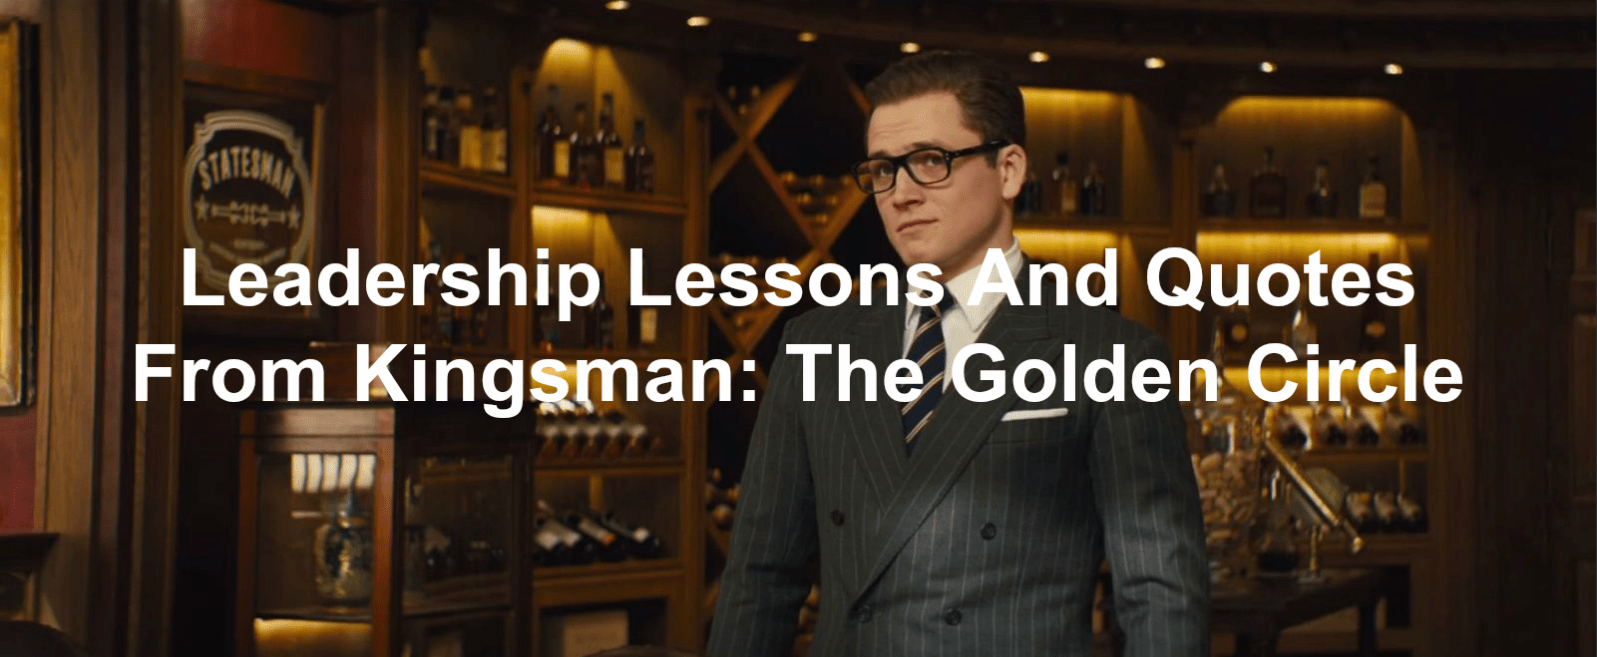 leadership lessons and quotes from Kingsman: The Golden Circle